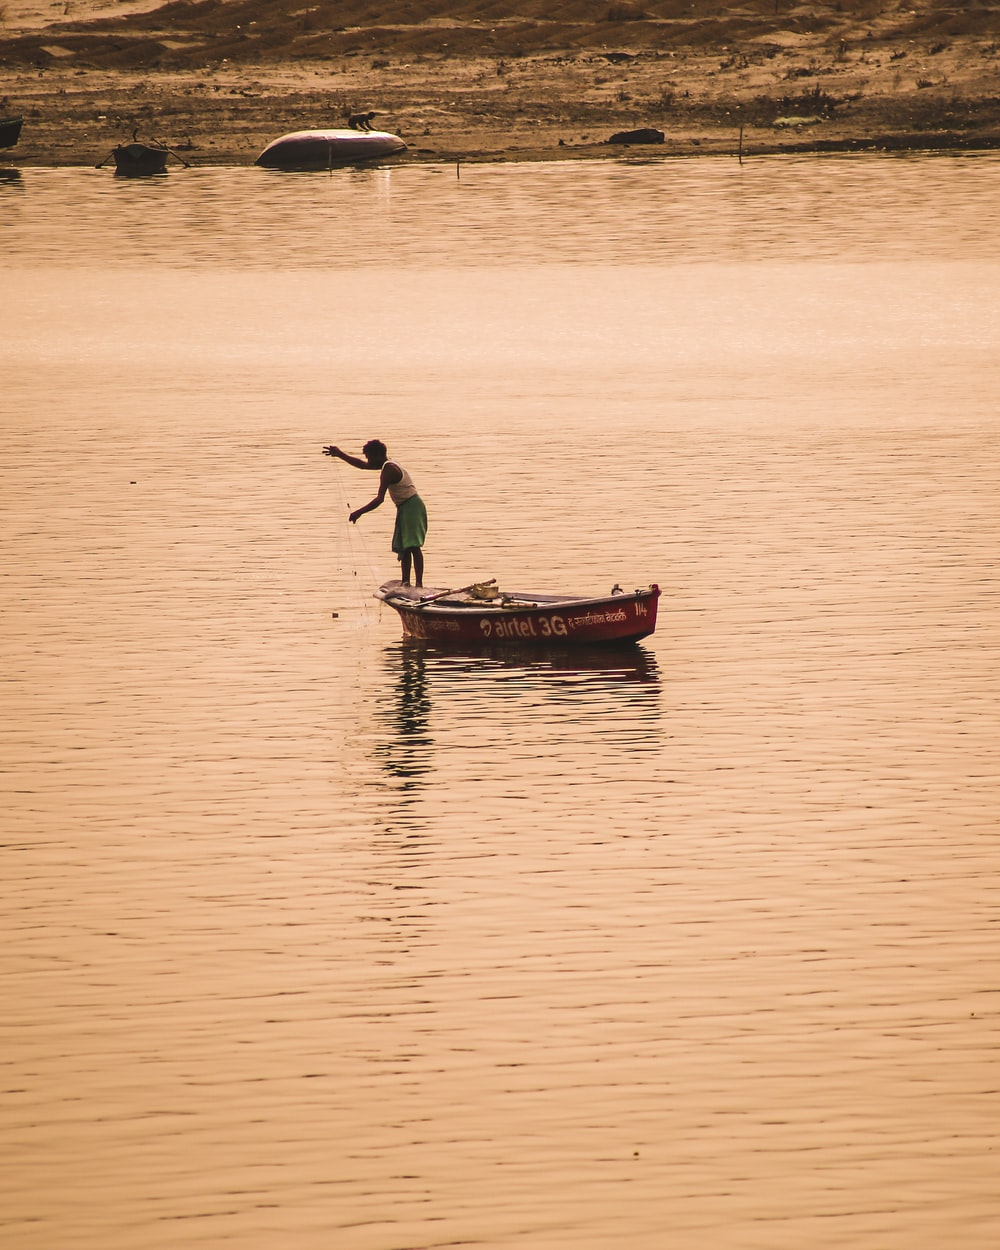 man fishing on body of water